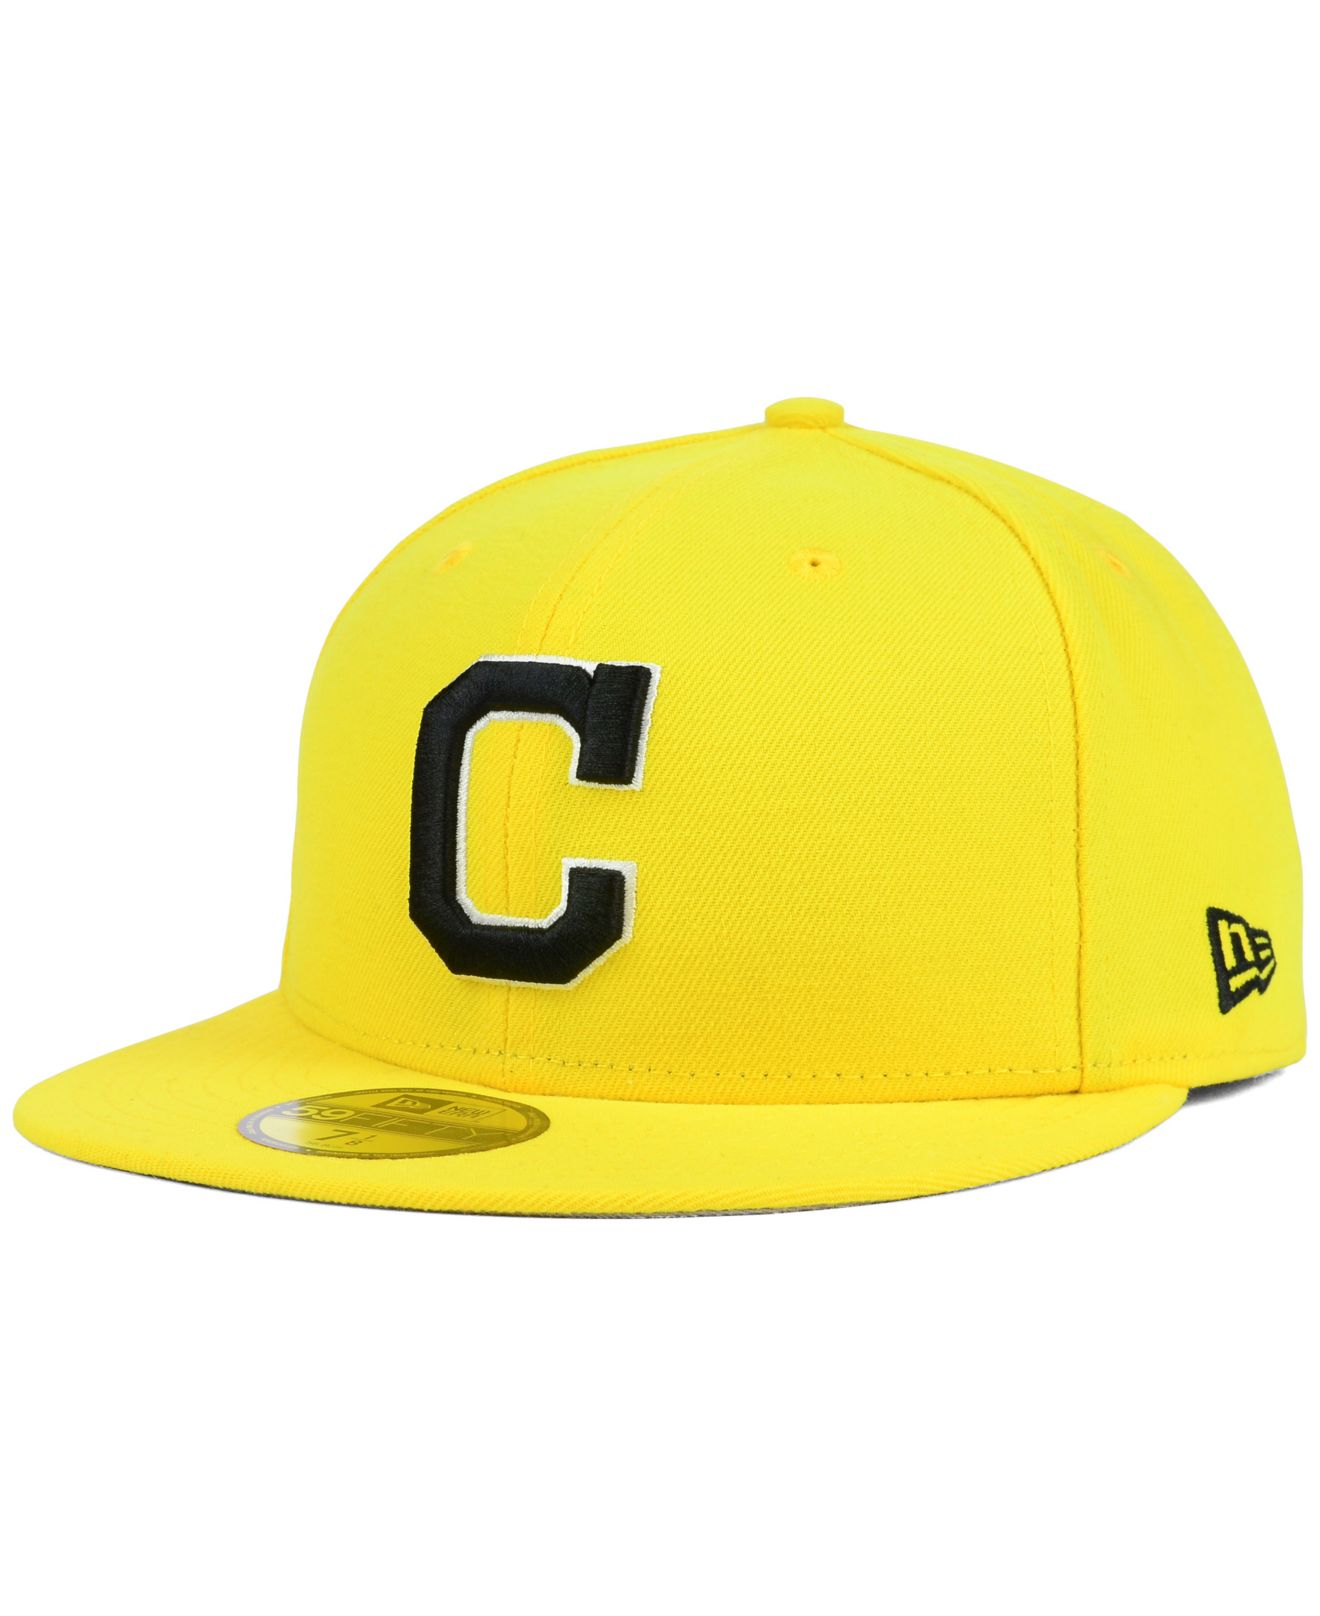 new arrival 0d3dc 749d3 KTZ Cleveland Indians C-dub 59fifty Cap in Yellow for Men - Lyst